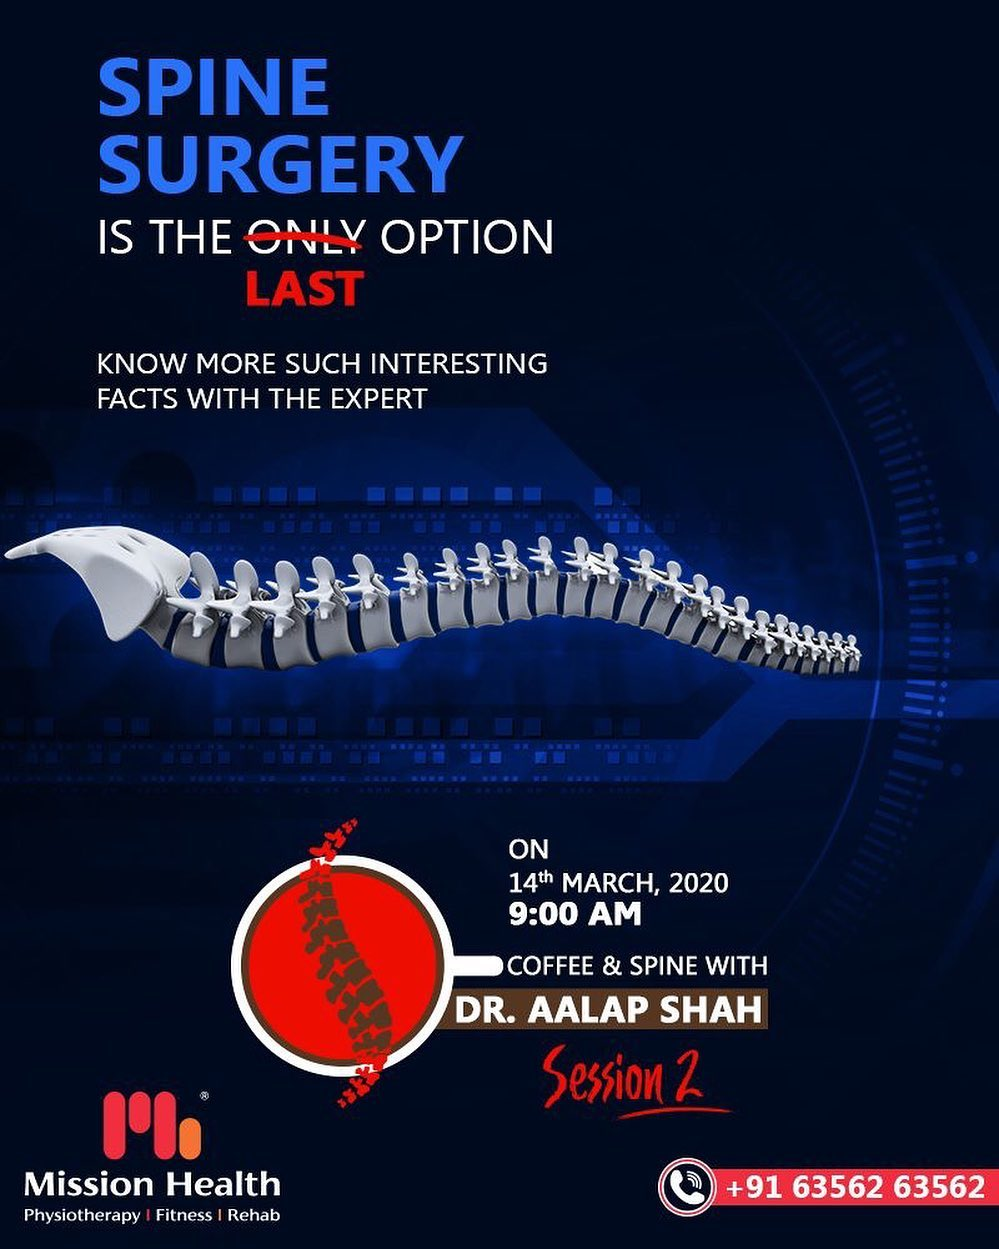 Coffee & Spine with Dr. Alap Shah is back again with Session 2 to solve all your spine problems and offer hope of pain-free life.  For more details, keep reading this space... Call: +916356263562 Visit: www.missionhealth.co.in  #CoffeeAndSpineWithDrAalapShah #DrAalapShah #SuperSpecialitySpineClinic #SpineClinic #BackPain #NeckPain #SlippedDisc #MissionHealth #MissionHealthIndia #AbilityClinic #MovementIsLife